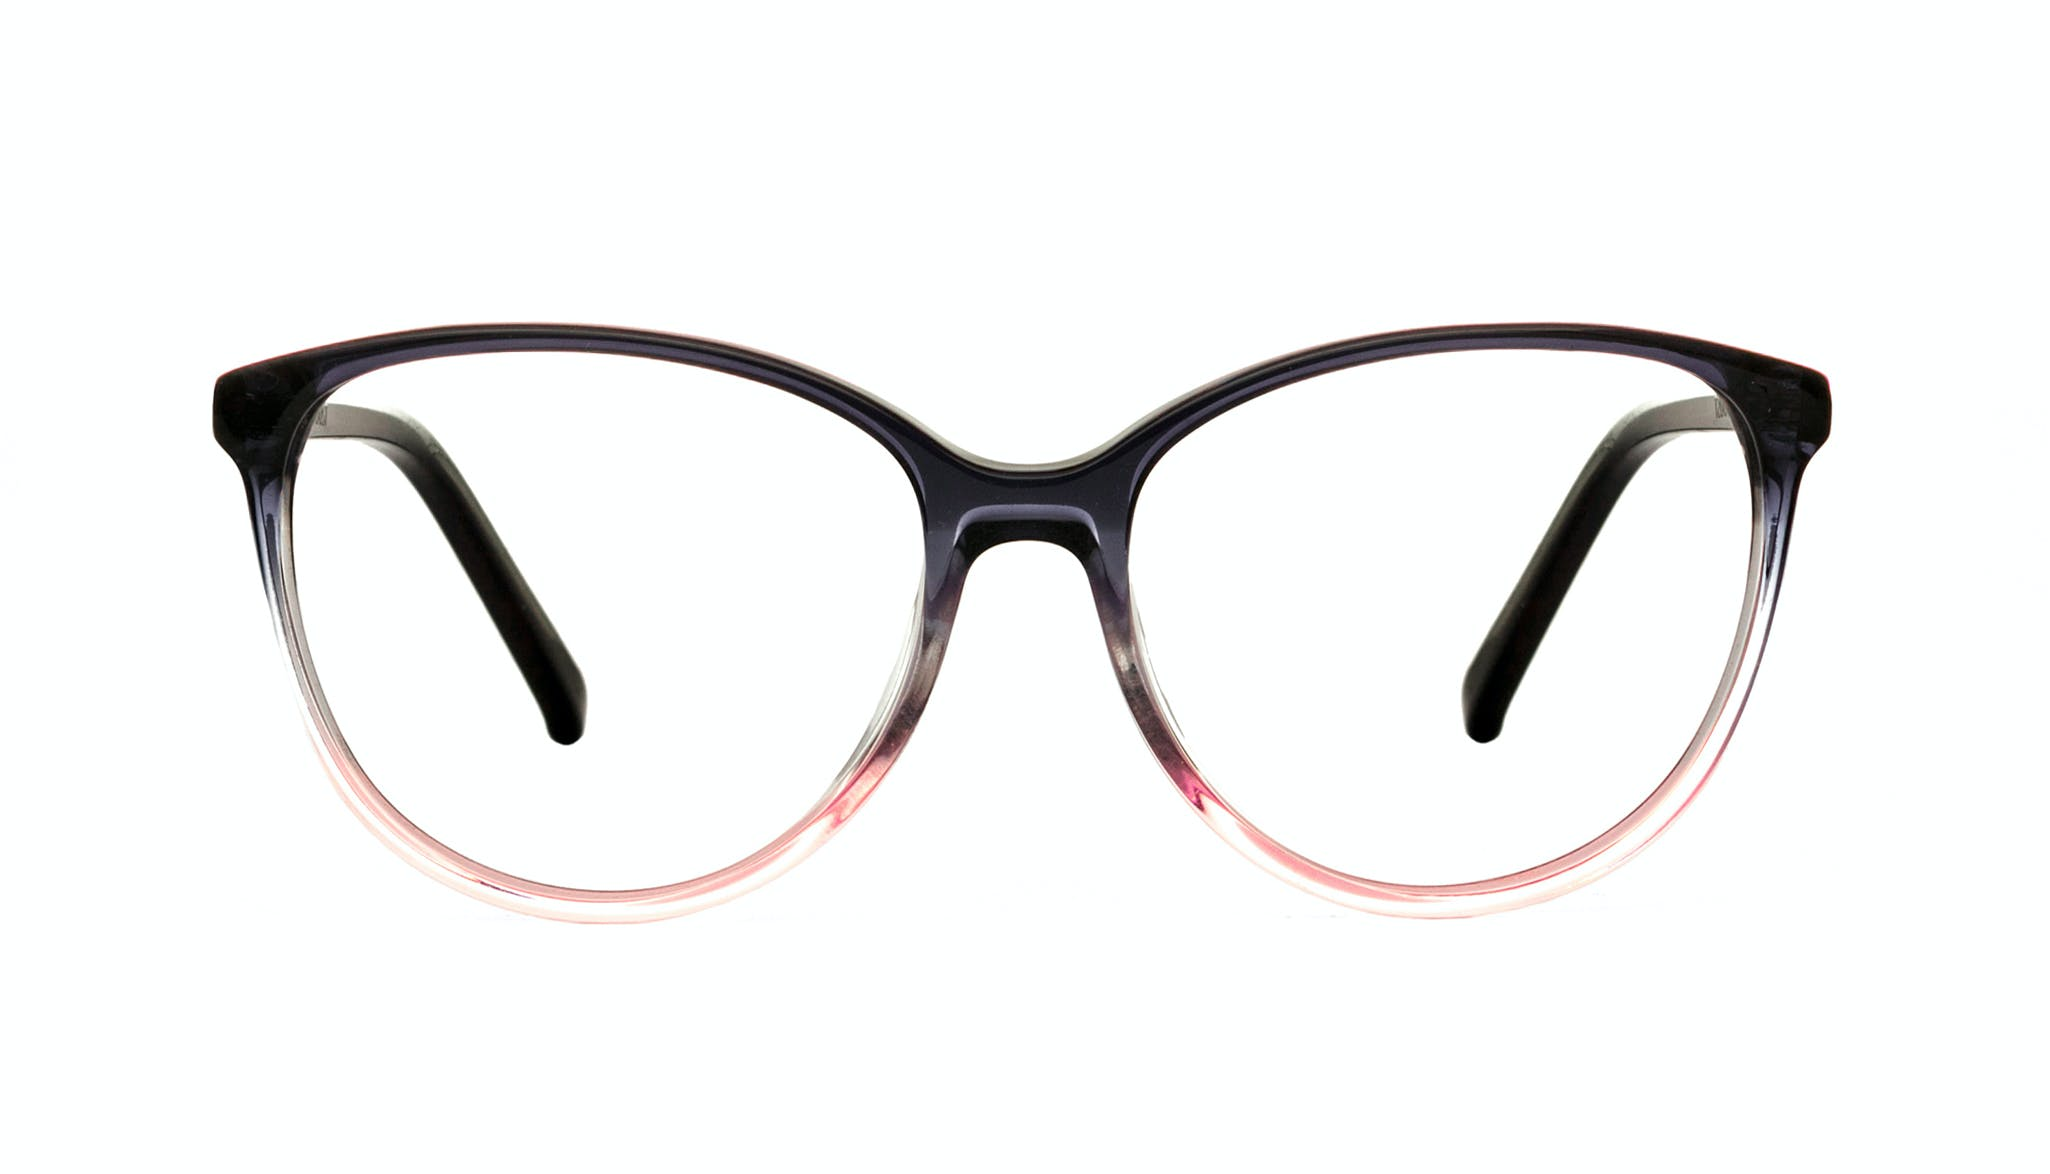 Affordable Fashion Glasses Round Eyeglasses Women Imagine Pink Dust